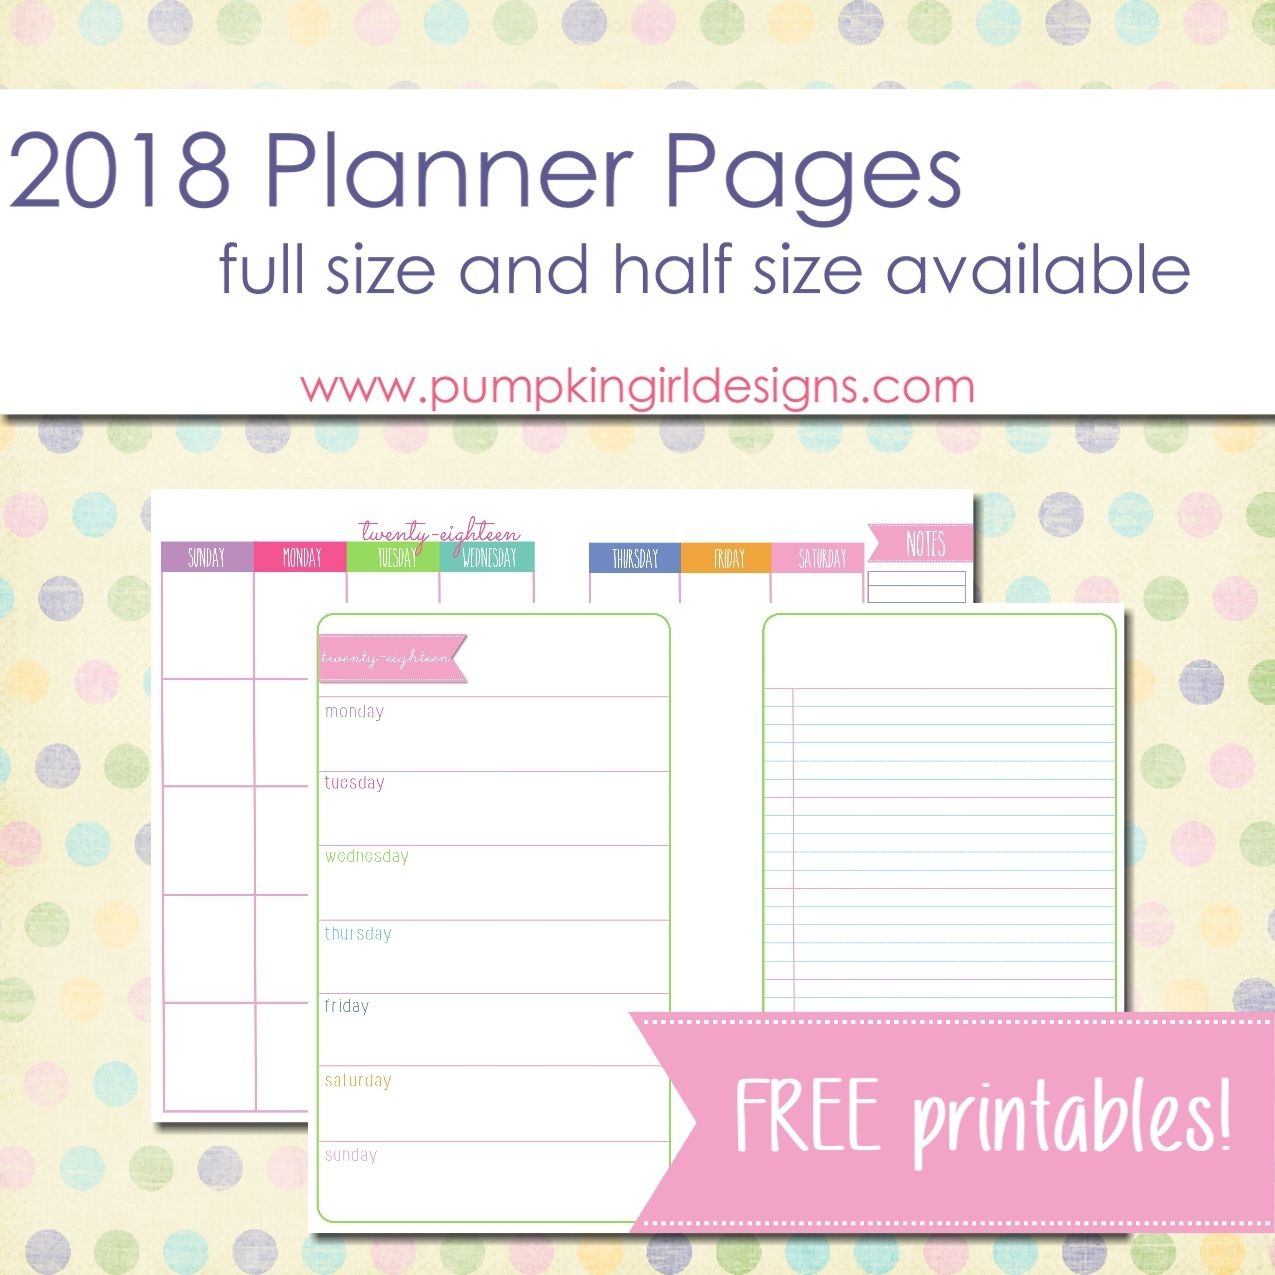 Free Printable 2018 Blank Planner Pages   Pumpkingirl Designs - Free Printable Diary Pages